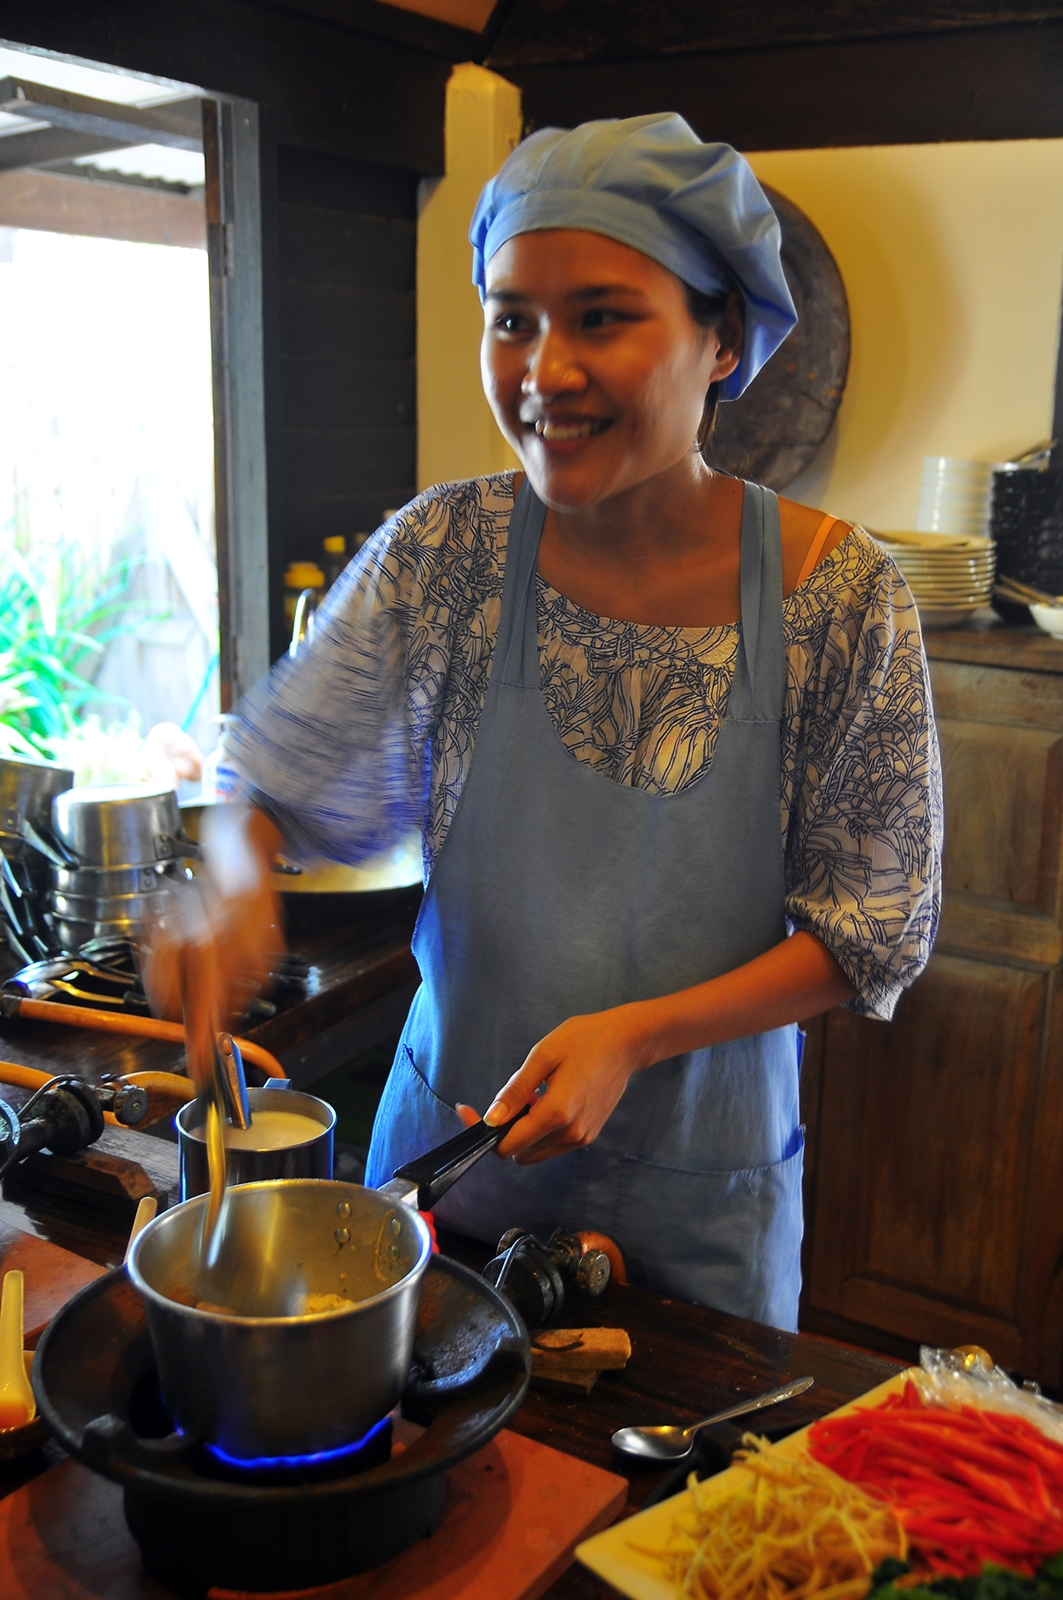 Thai Cooking Course Hua Hin